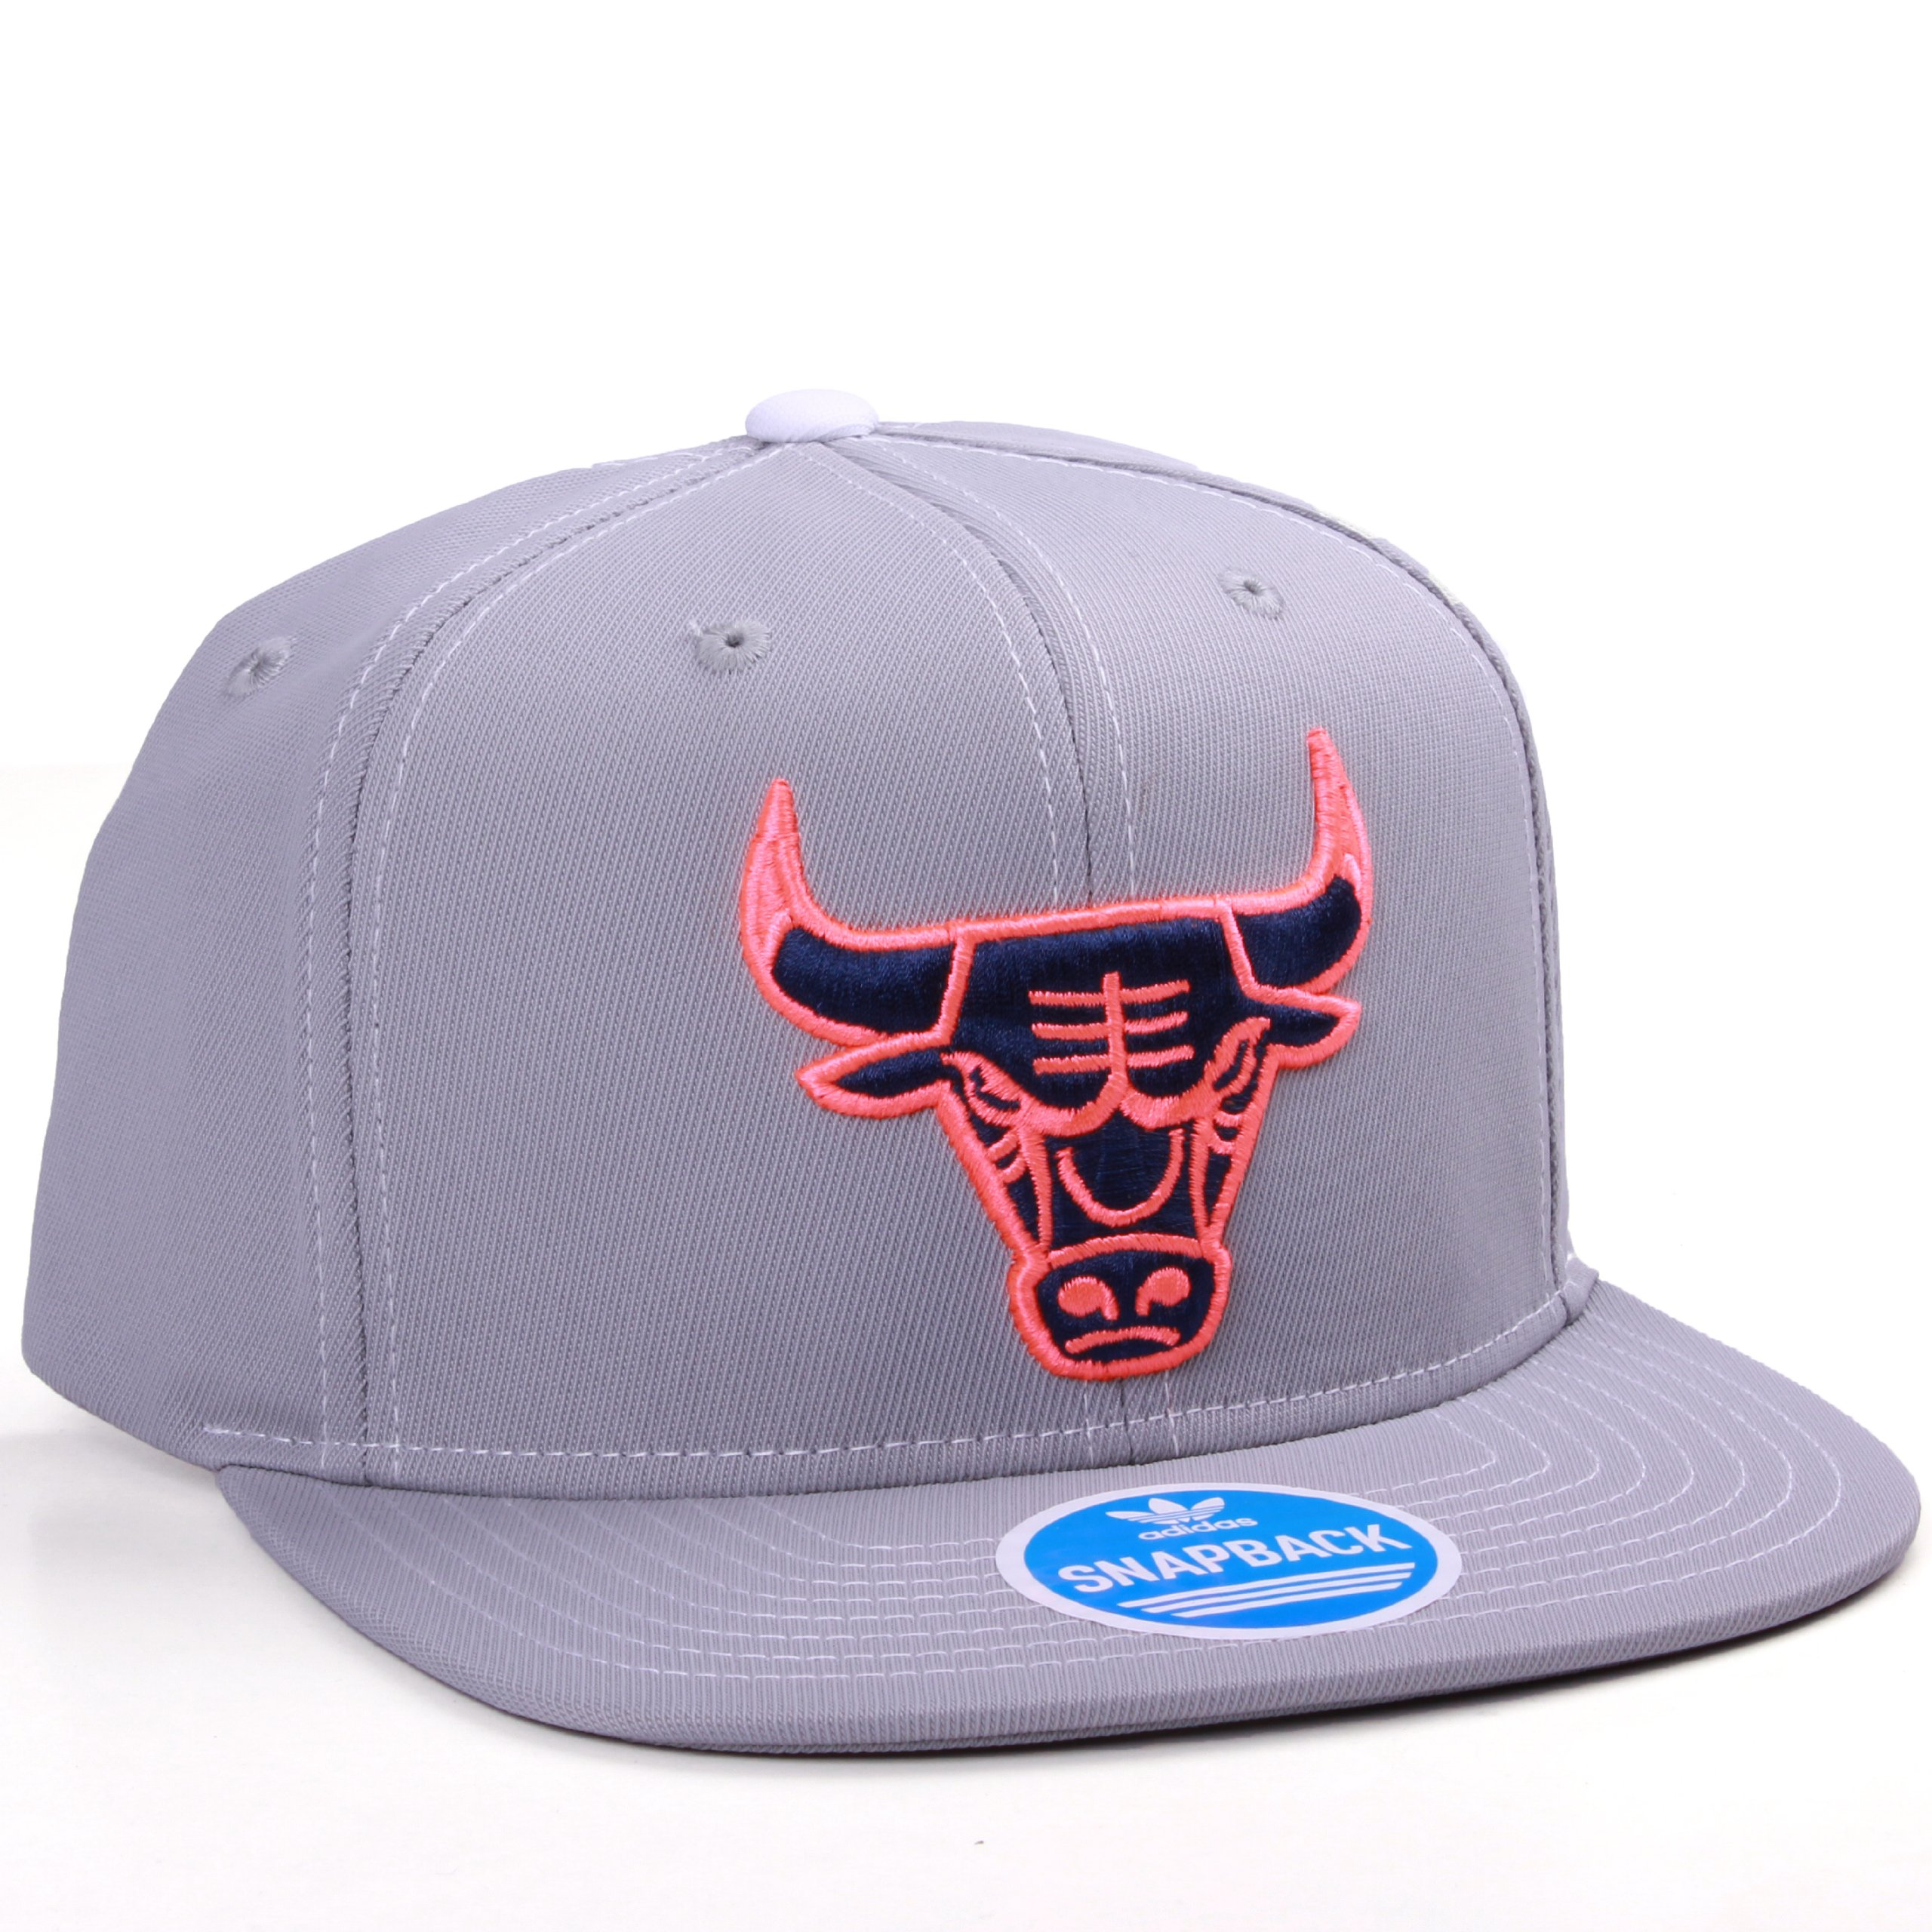 NBA Chicago Bulls Flat Bill Limited Edition Style Snapback Hat Cap Unknown  Binding c52e34cc9ba